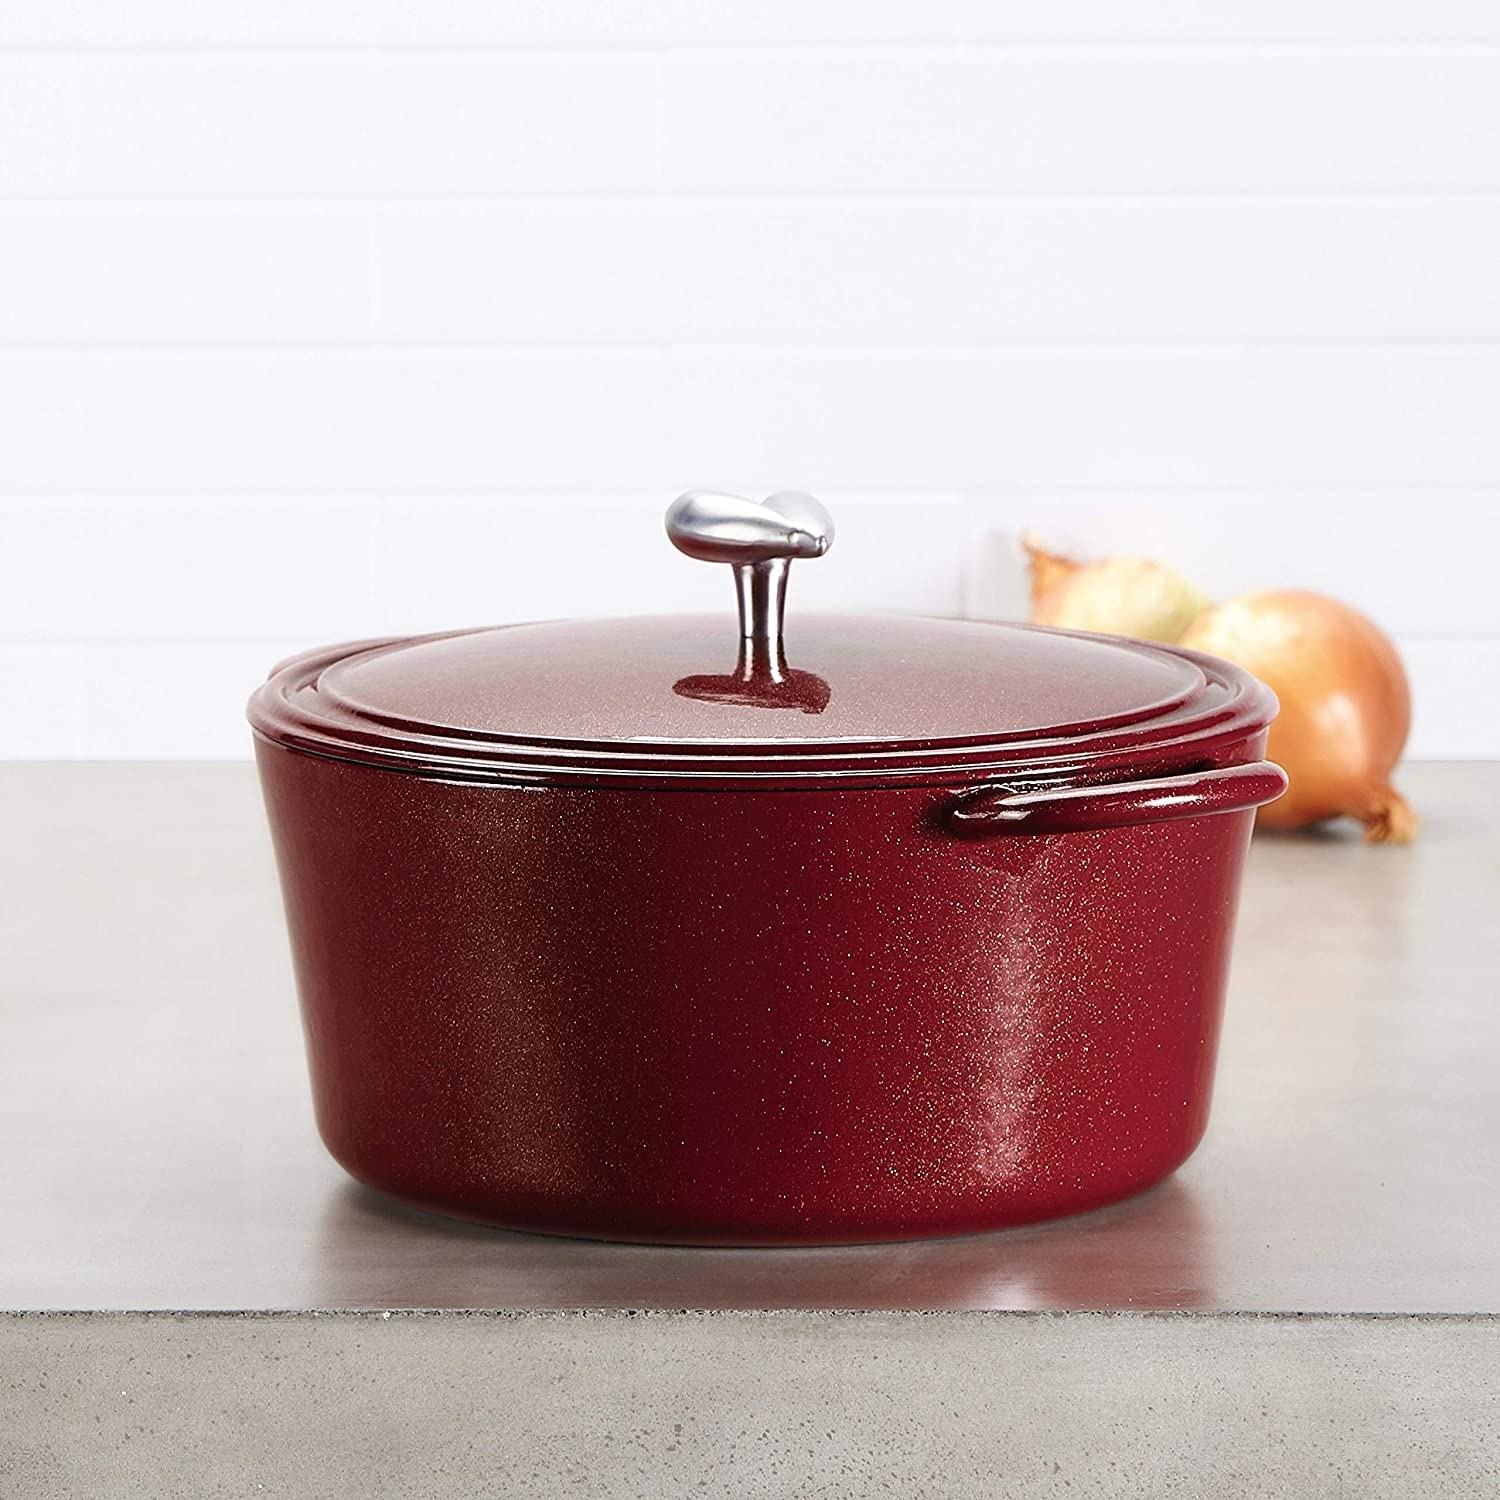 The dutch oven in red